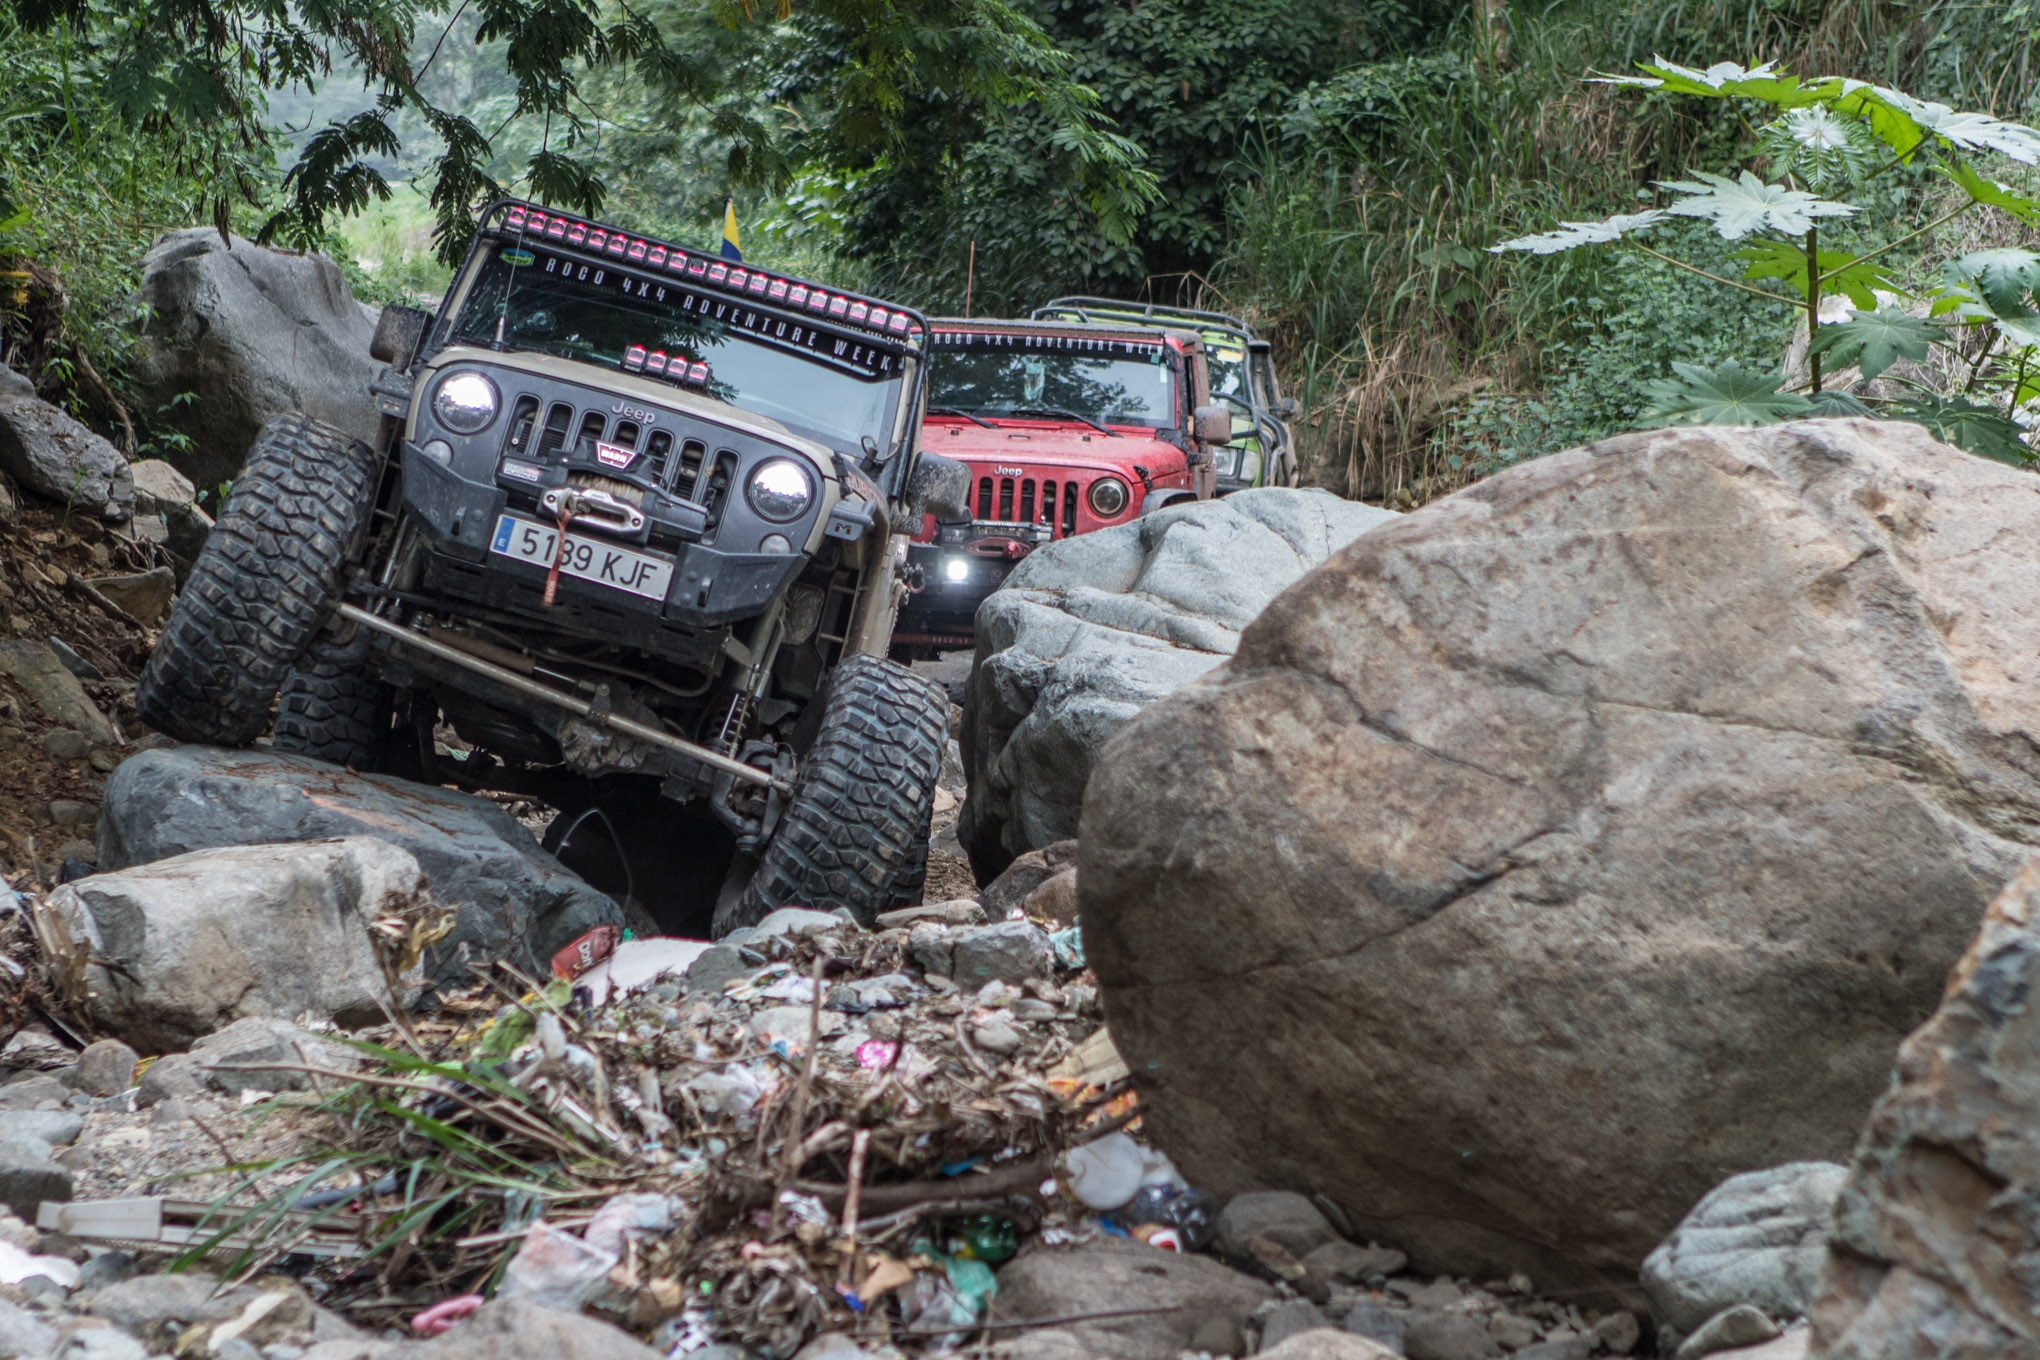 Urban wheeling usually involved concrete and steel, not trash. This rocky ravine serves as a waterway during flash floods, but it also serves as a dumping ground for the surrounding area. Poorer regions of Honduras don't have any trash service, so garbage on the ground was pervasive.